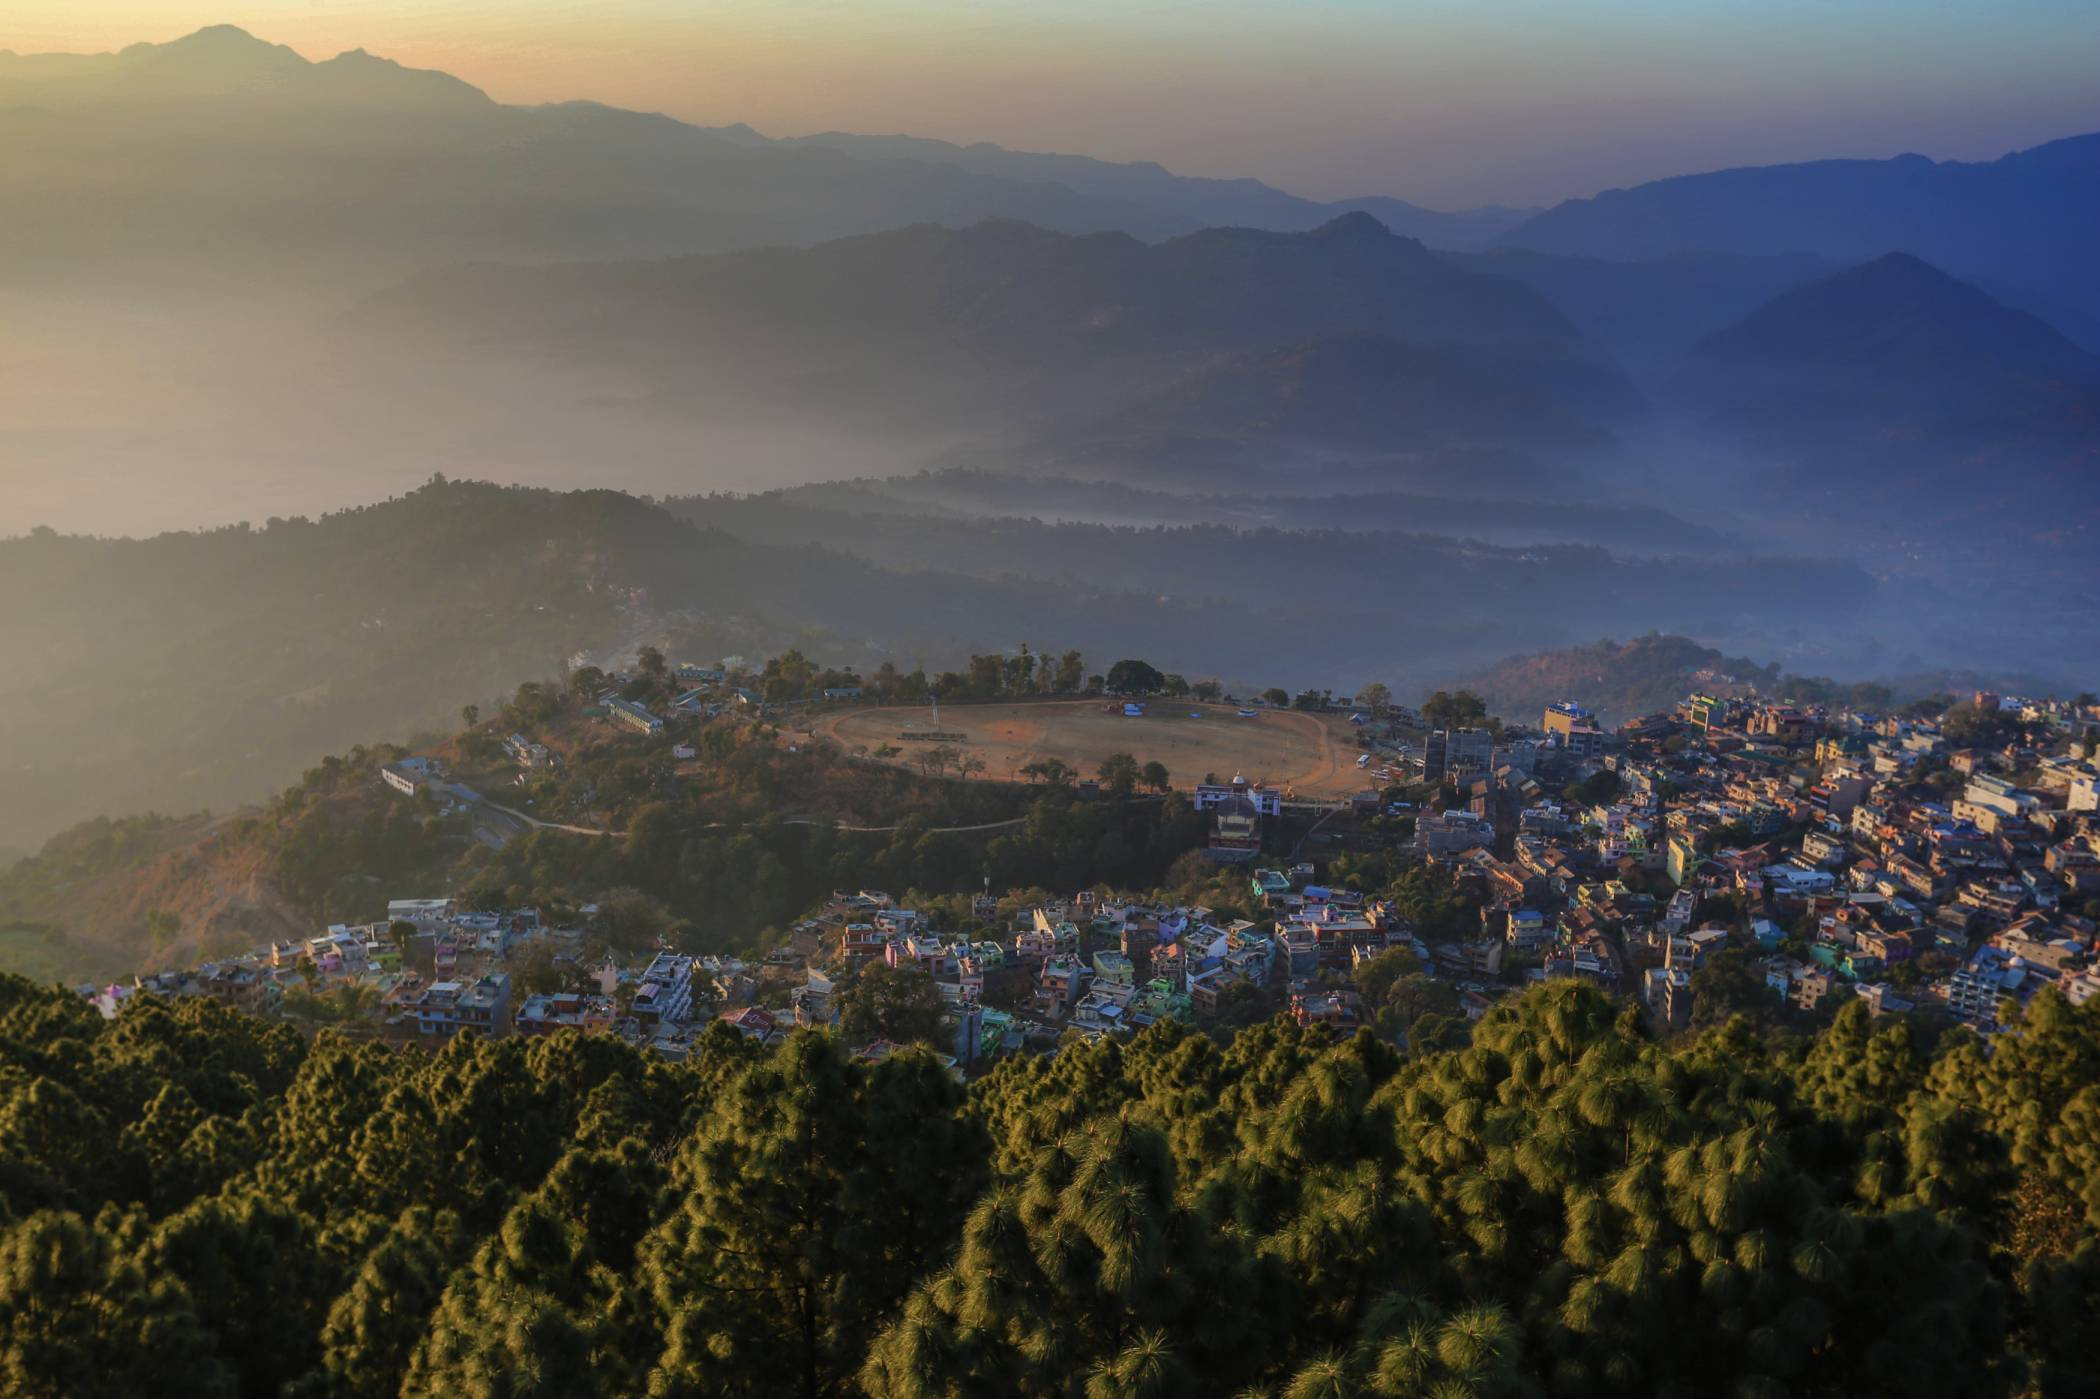 View of Tansen from nerby hills